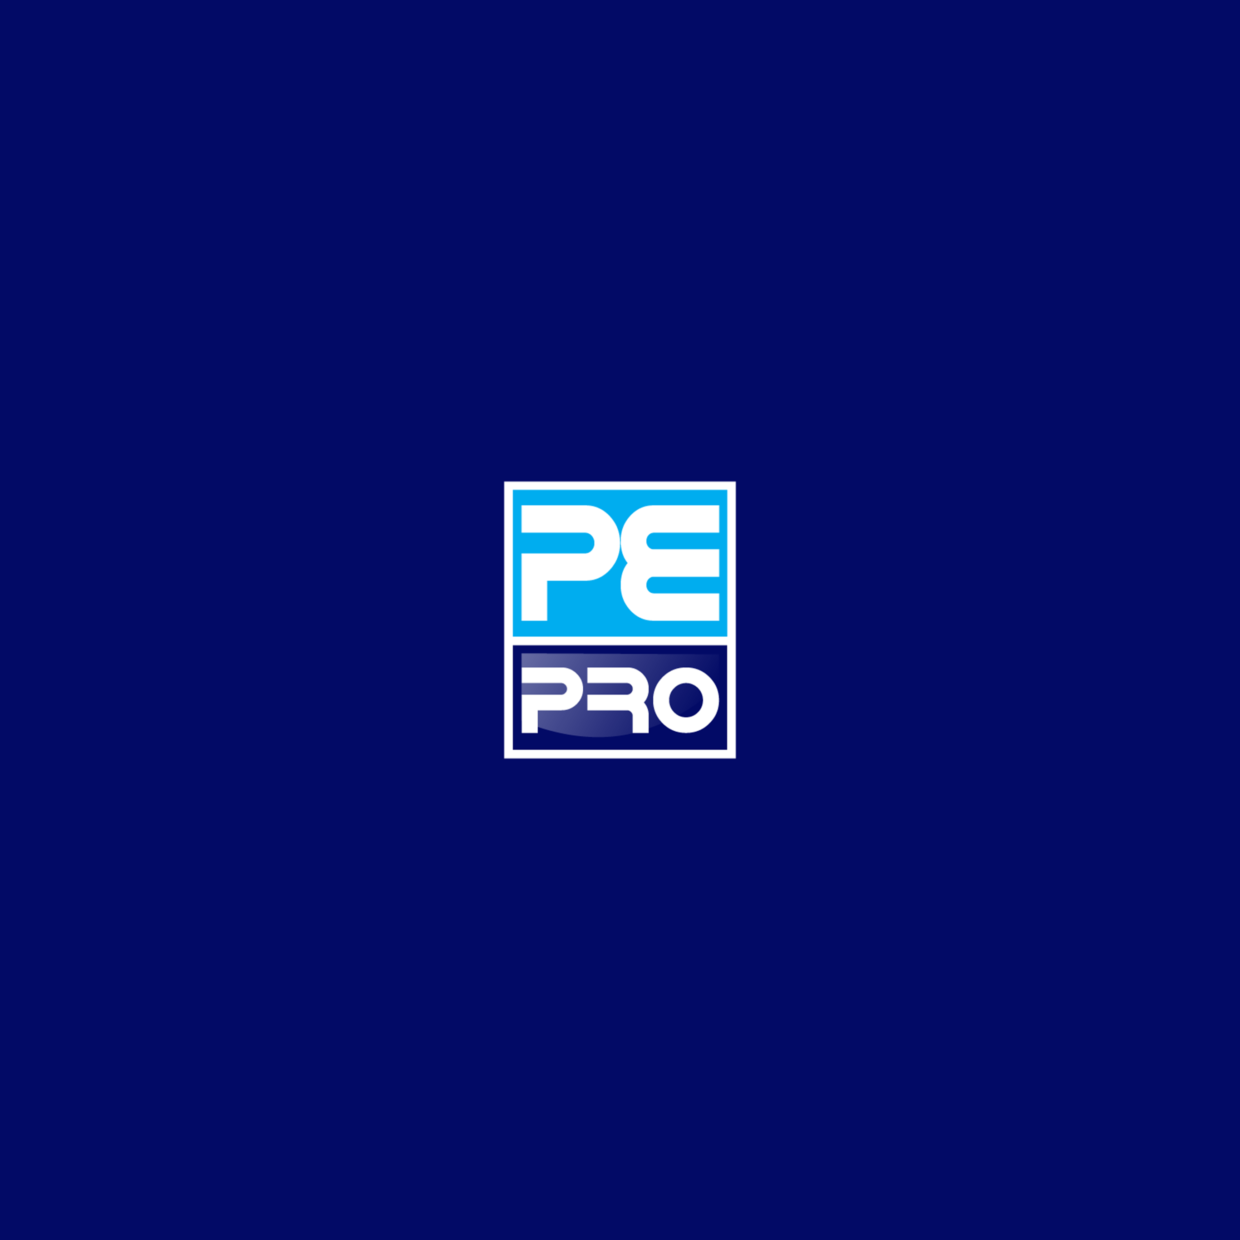 PE Pro splash screen